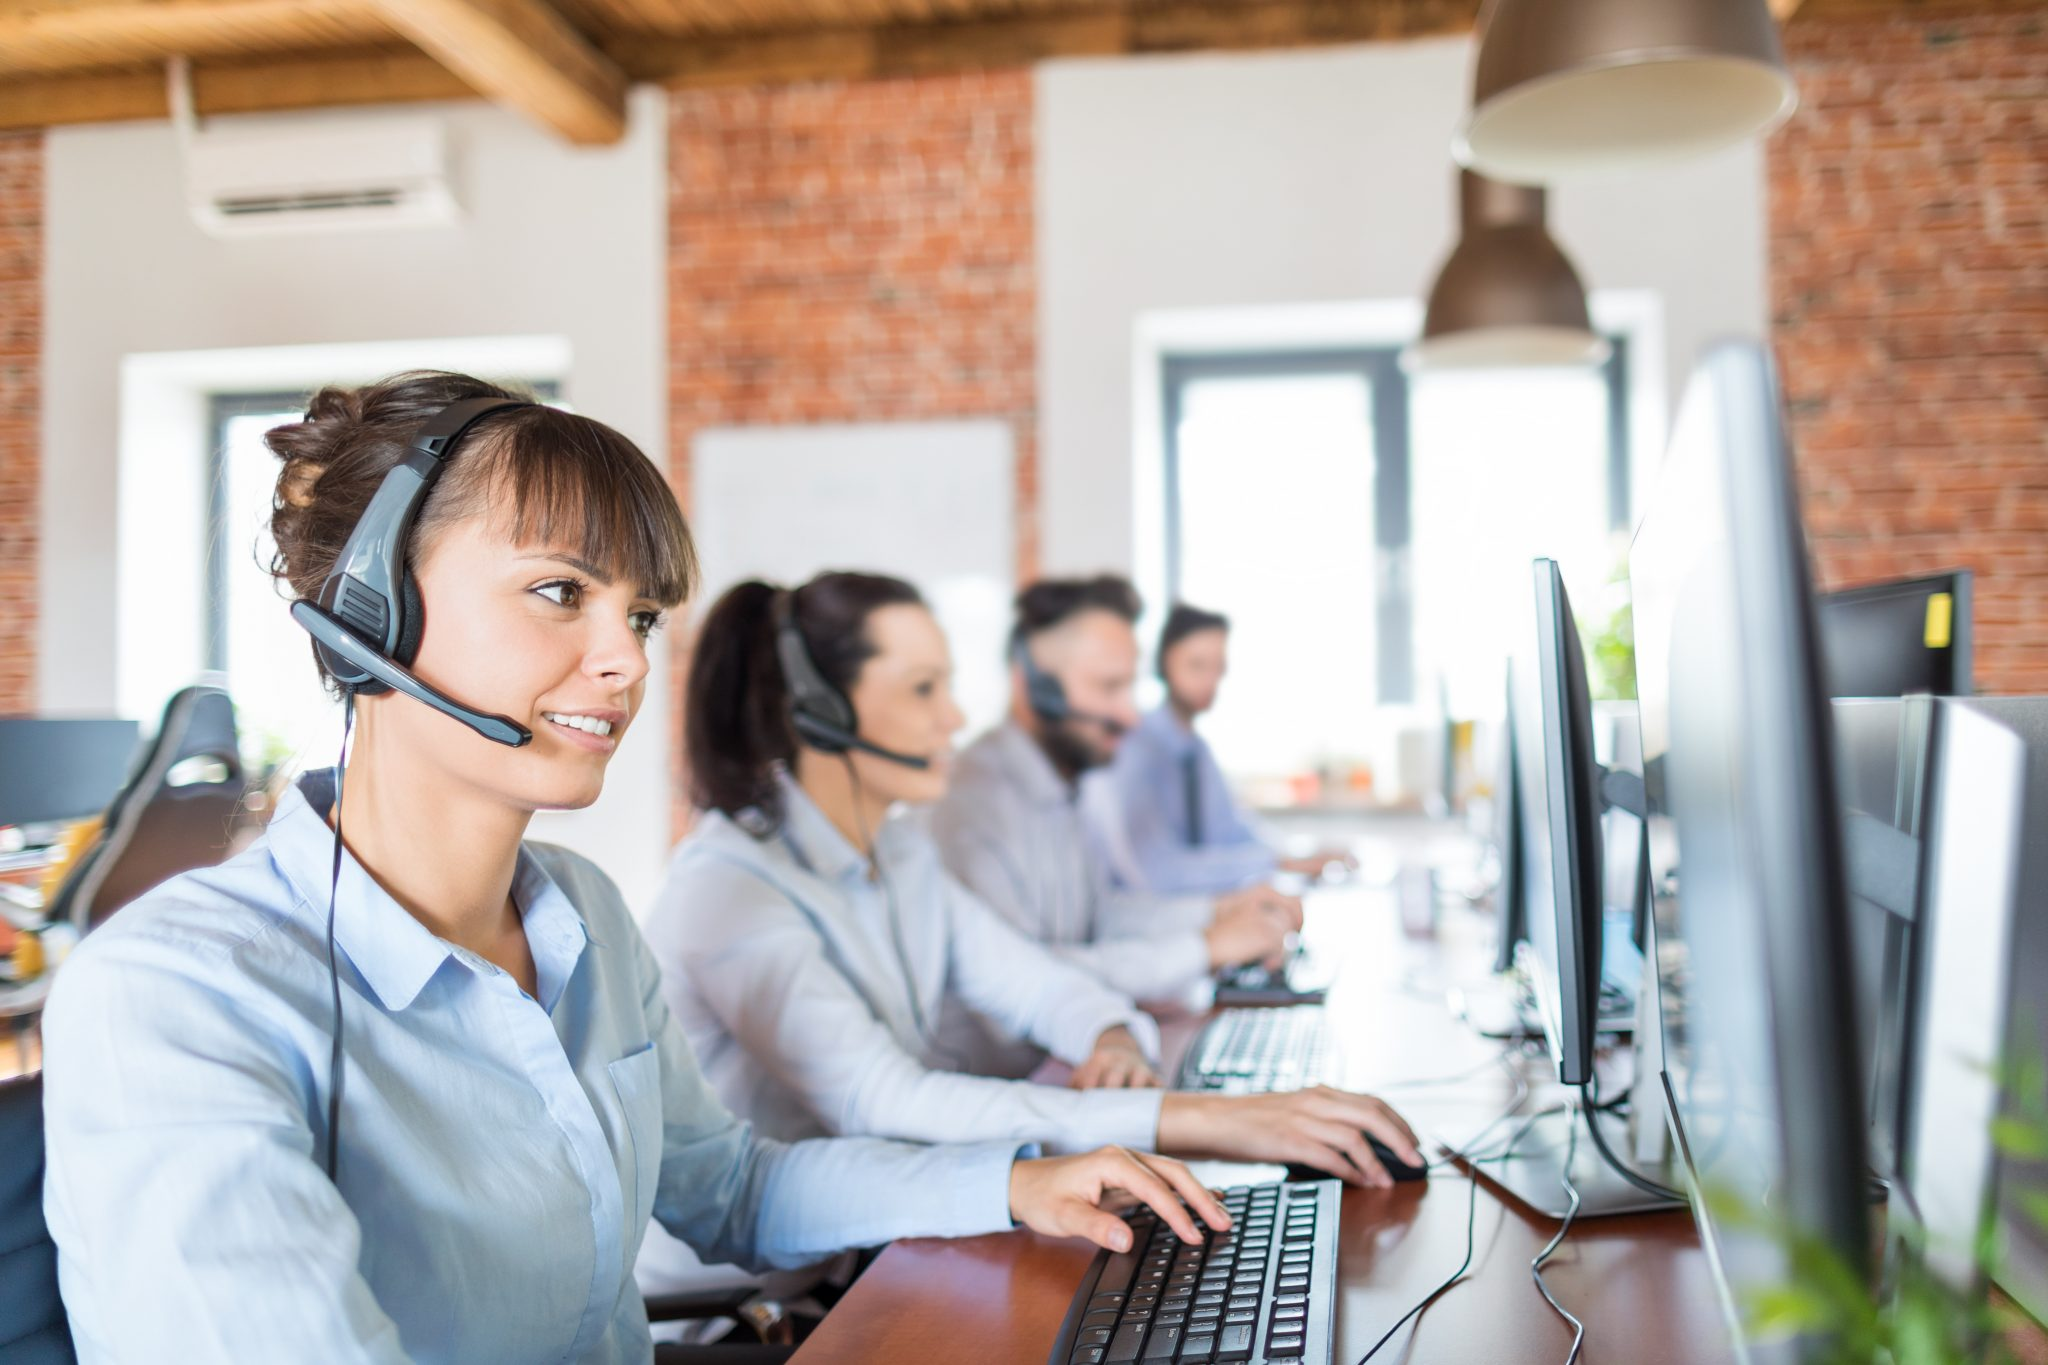 Customer-Services-CRM-Insights-832108762